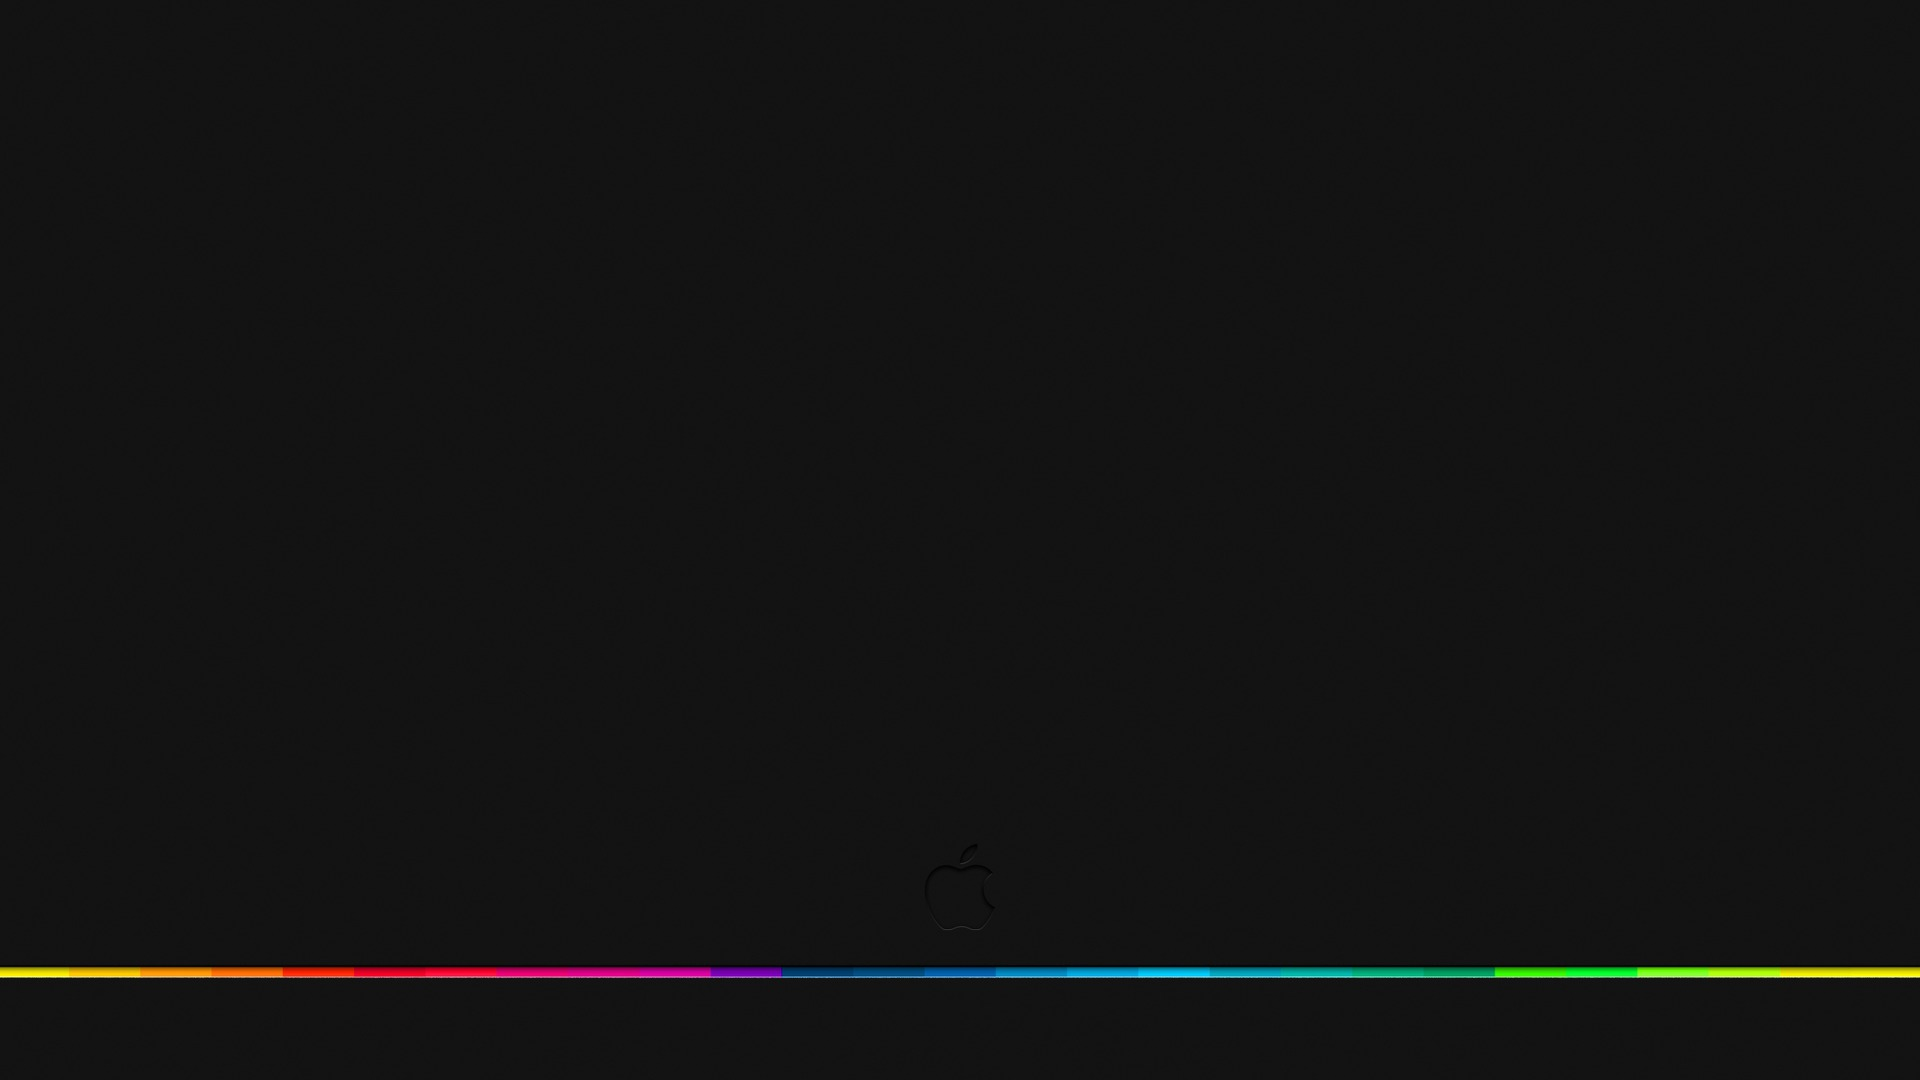 Google Dark Wallpaper